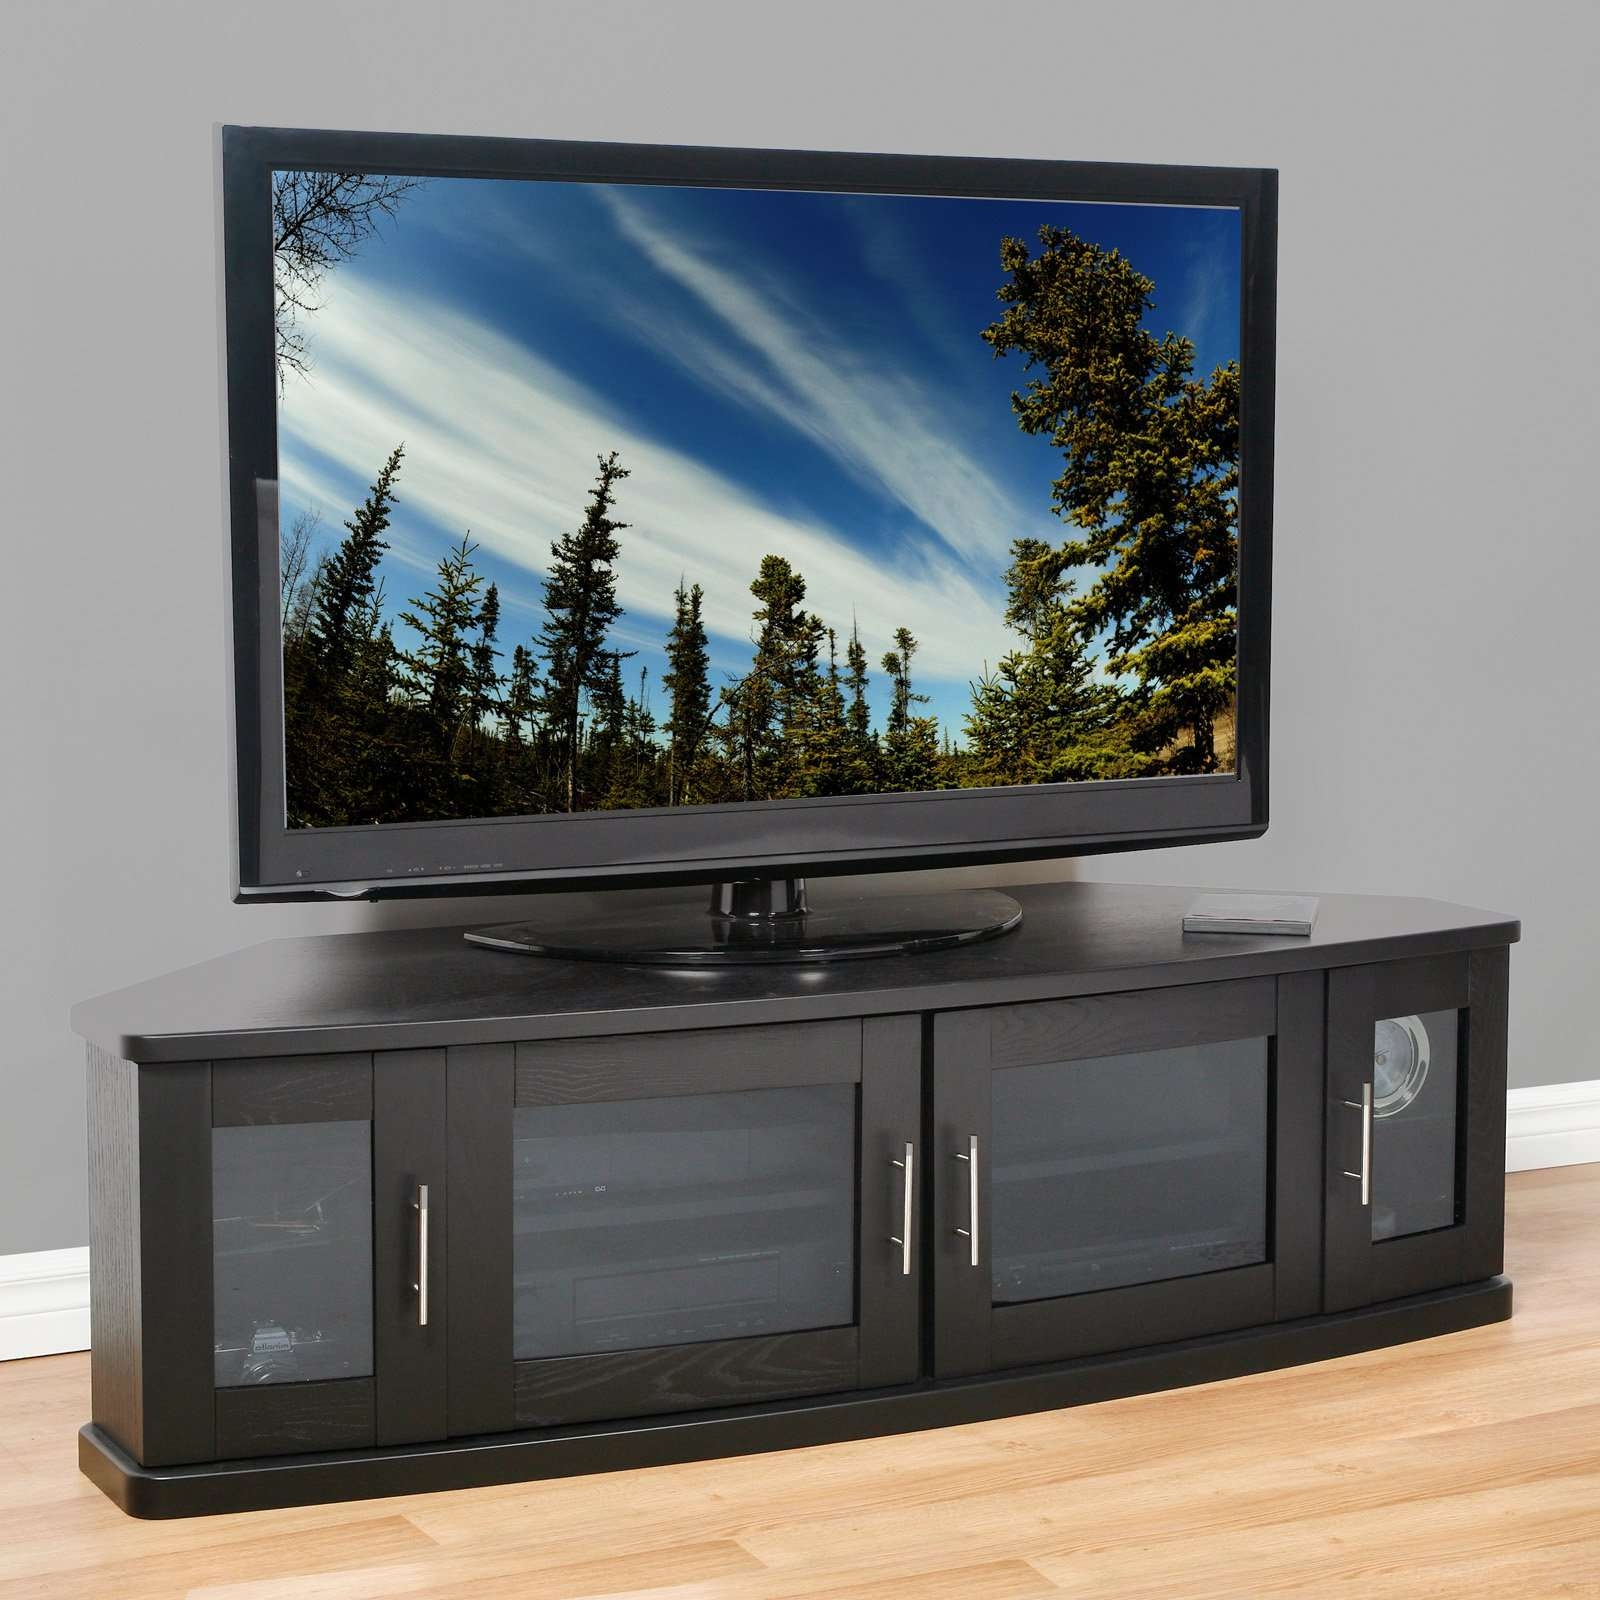 Modern Black Wooden Tv Stand With Frosted Glass Doors Of Dazzling Inside Wooden Tv Stands With Glass Doors (View 13 of 15)